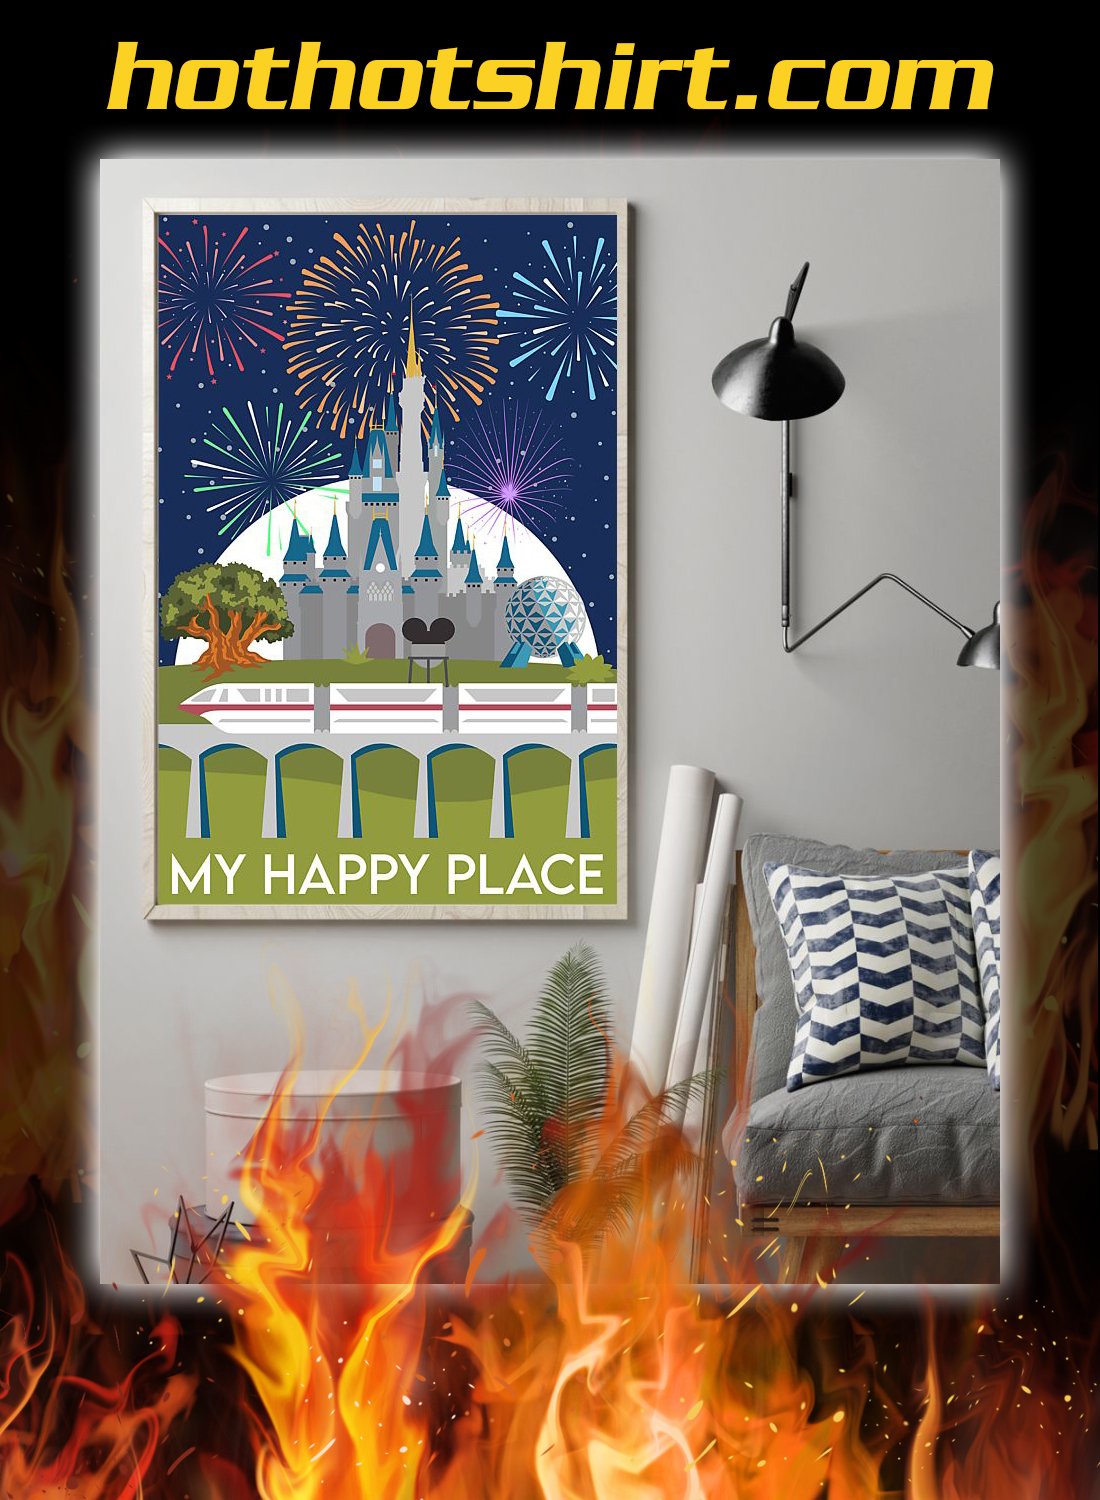 My happy place poster 1